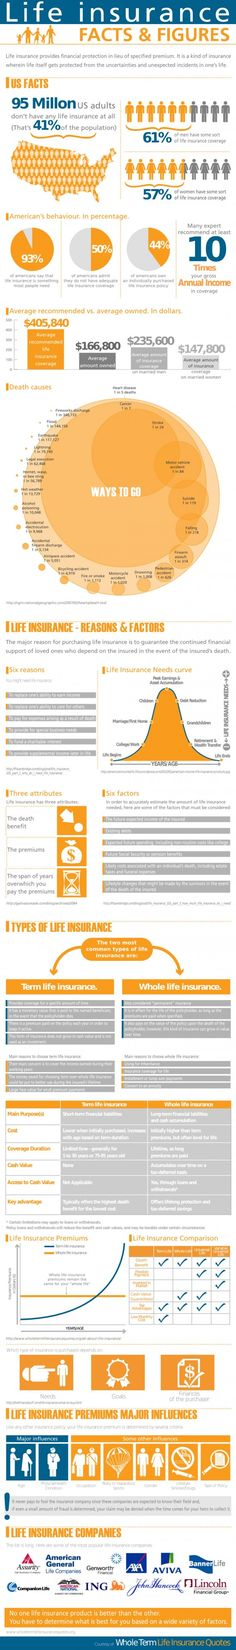 LIFE INSURANCE FACTS & FIGUREShttp://www.riograndeins.com/insurance-life.htm